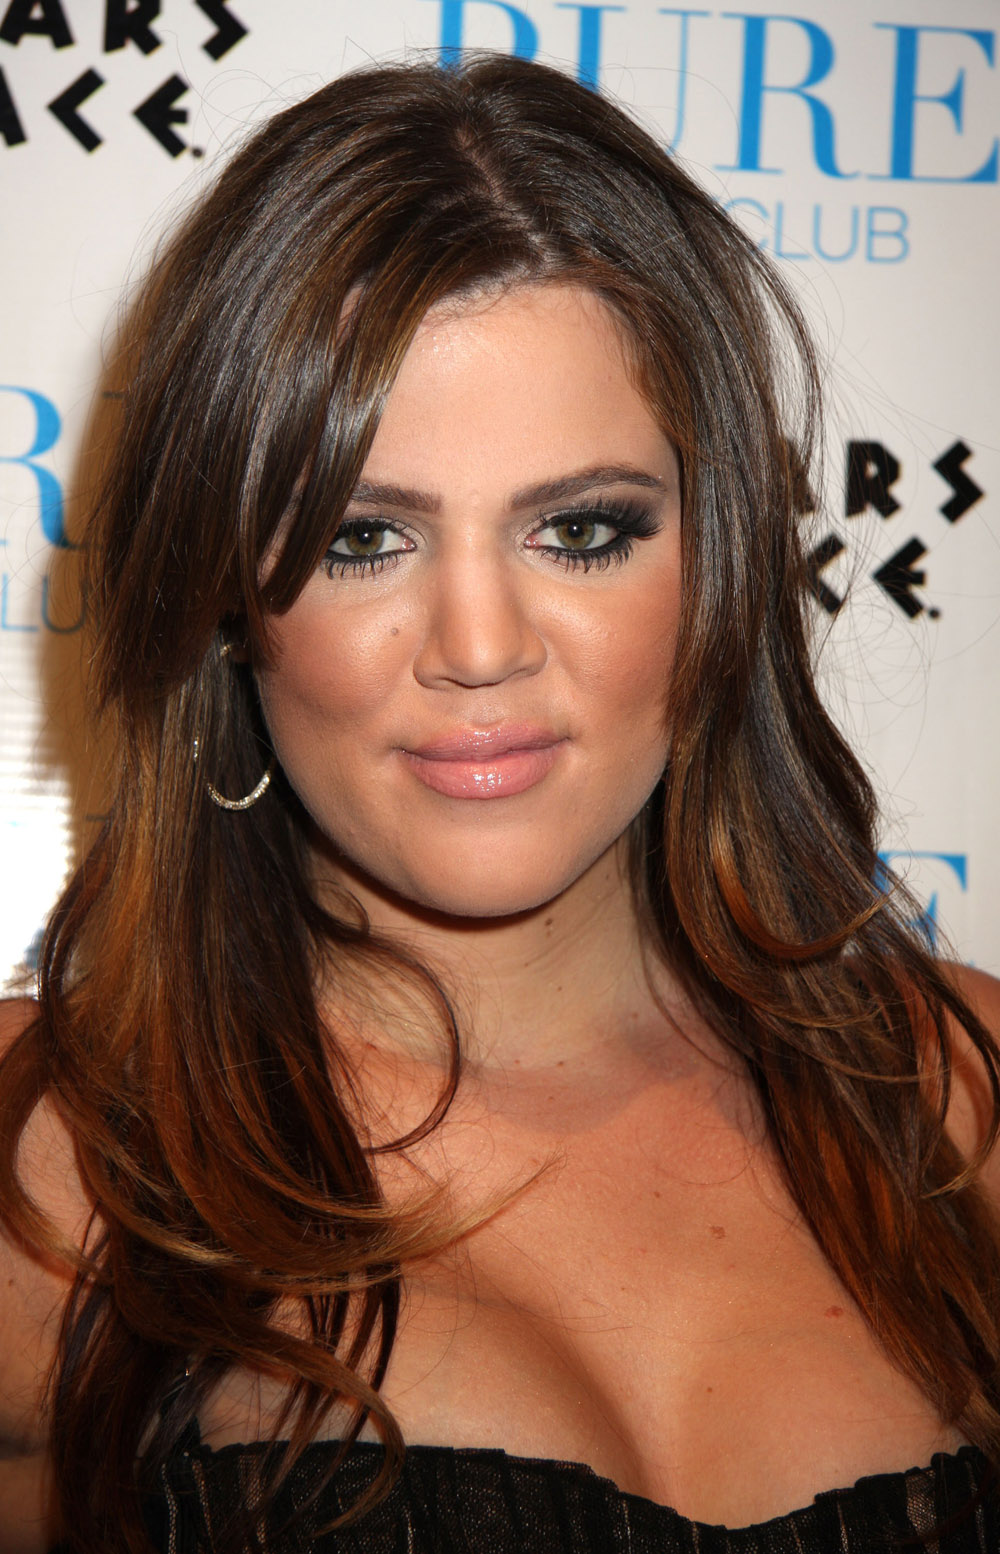 celebitchy khloe kardsahian�s face looks much different